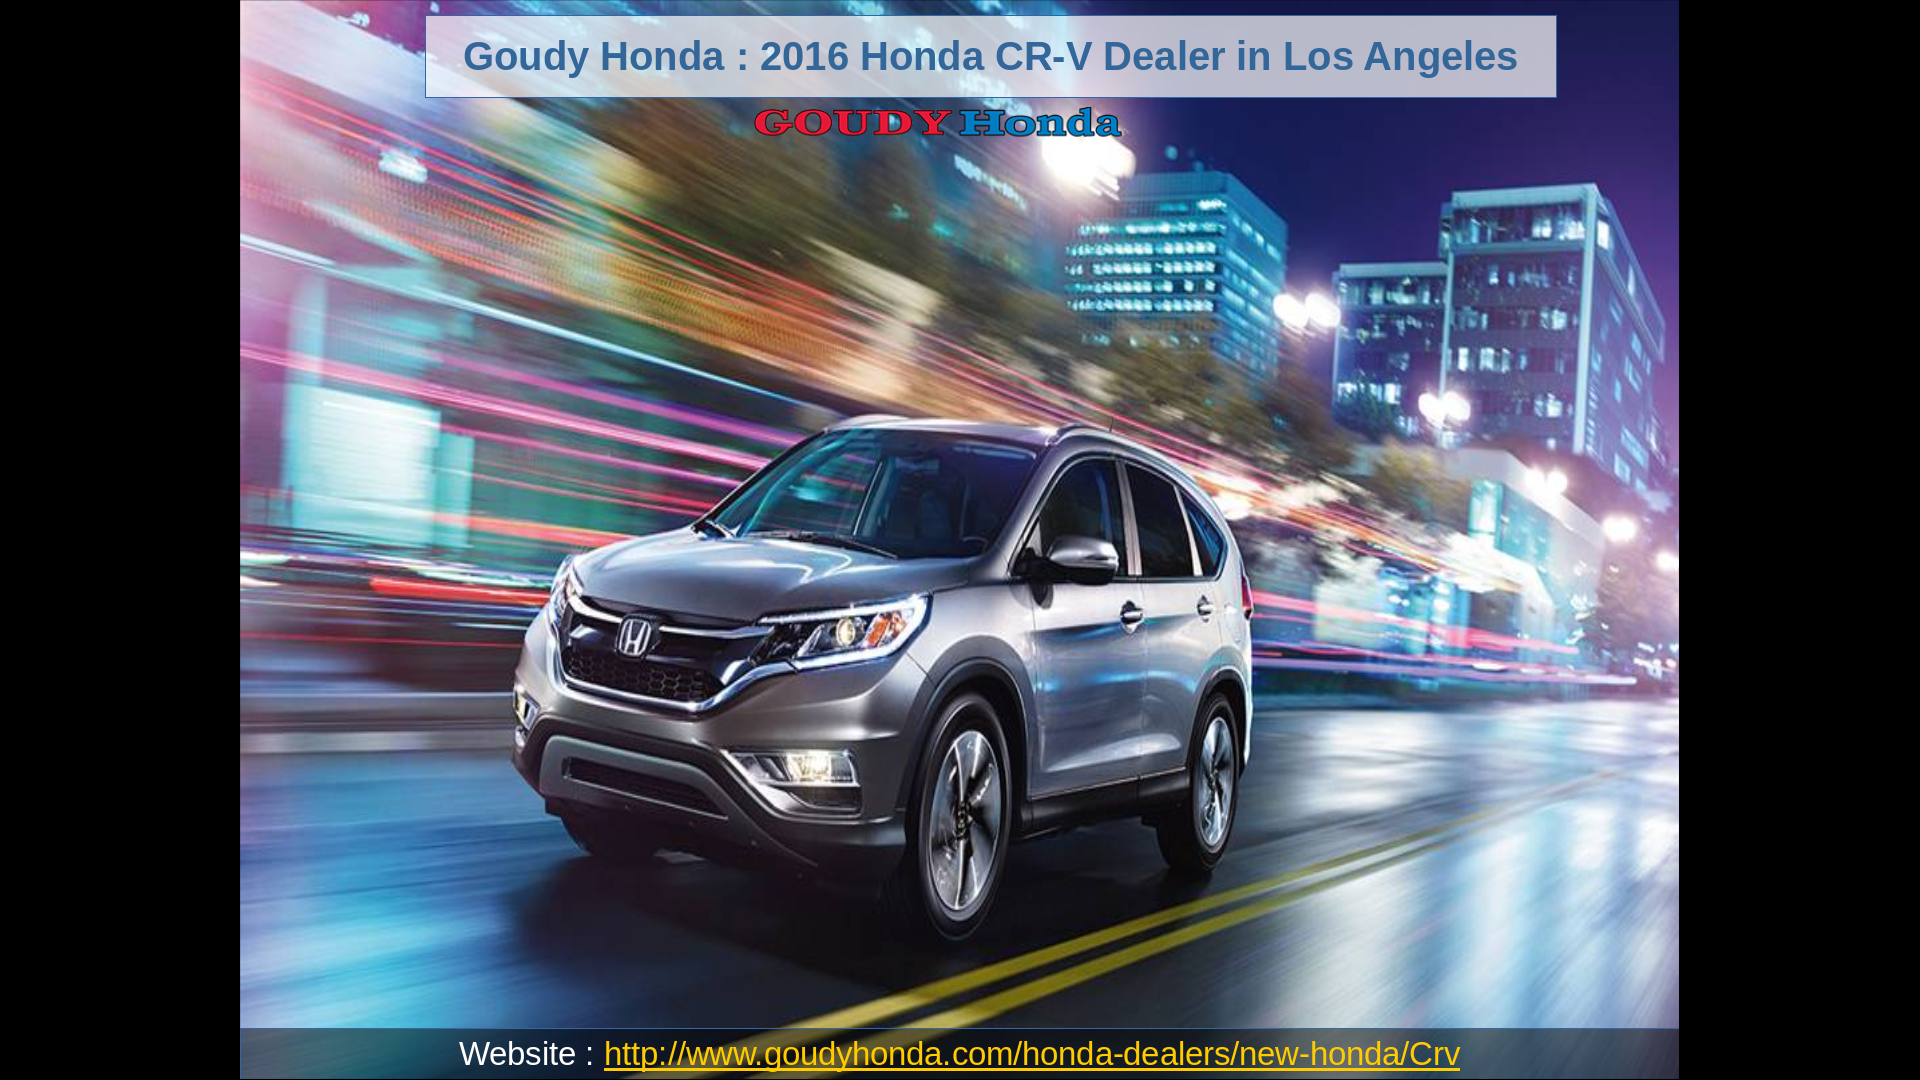 Goudy Honda Alhambra one of the largest volume Honda dealers in